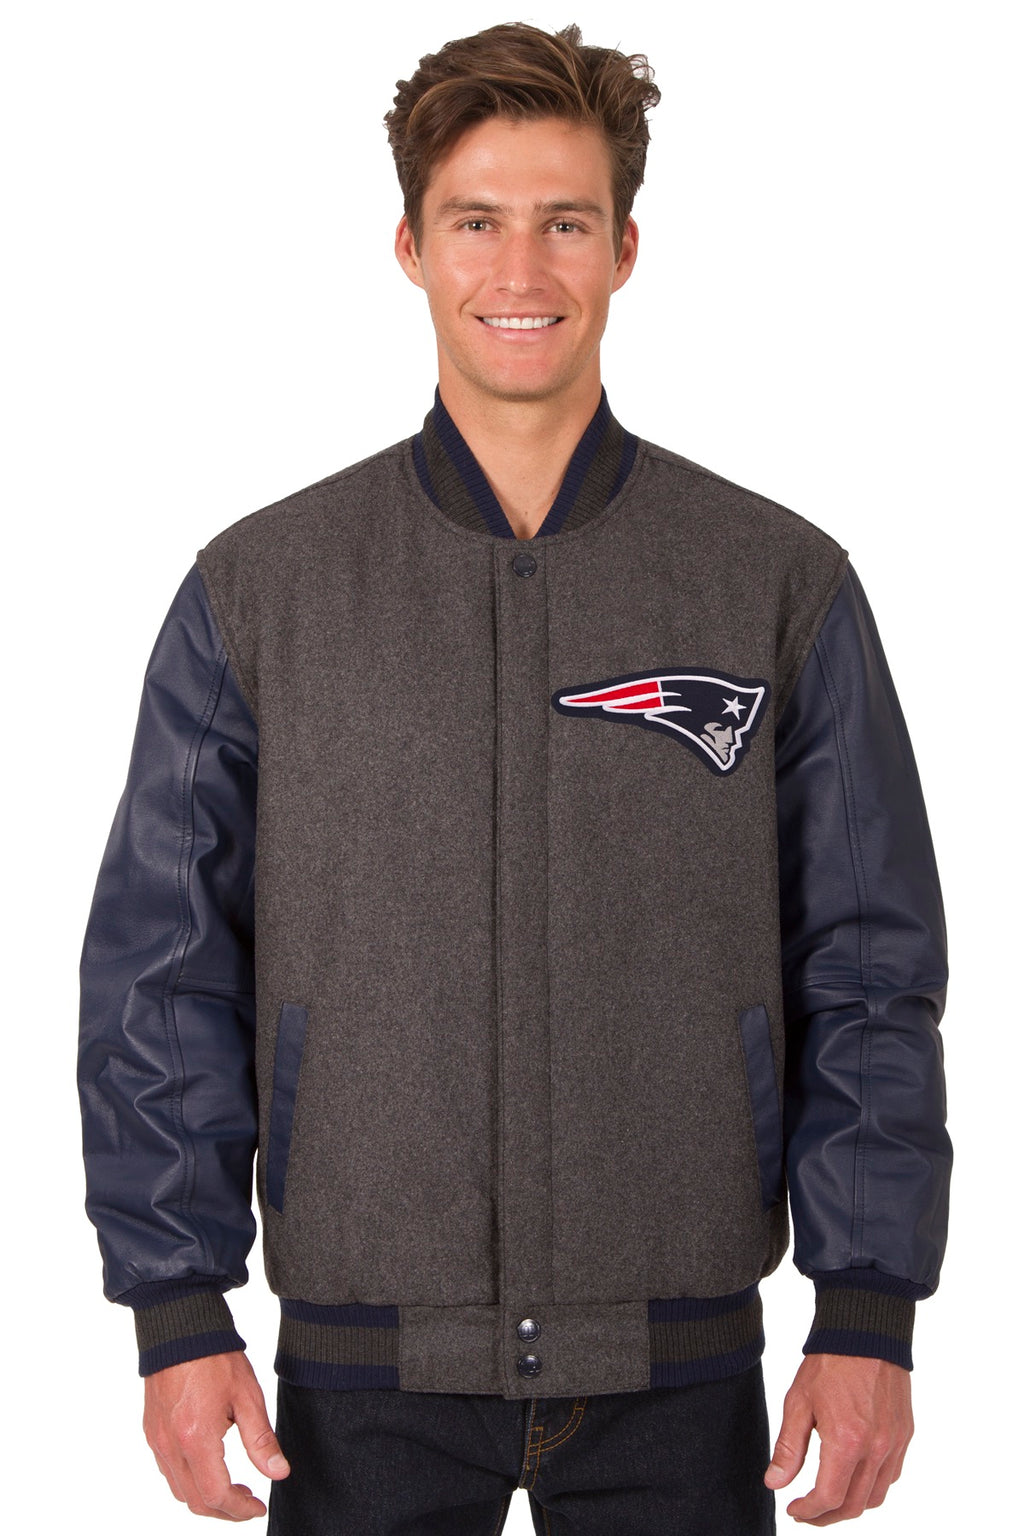 New England Patriots Reversible Jacket – Charcoal and Navy